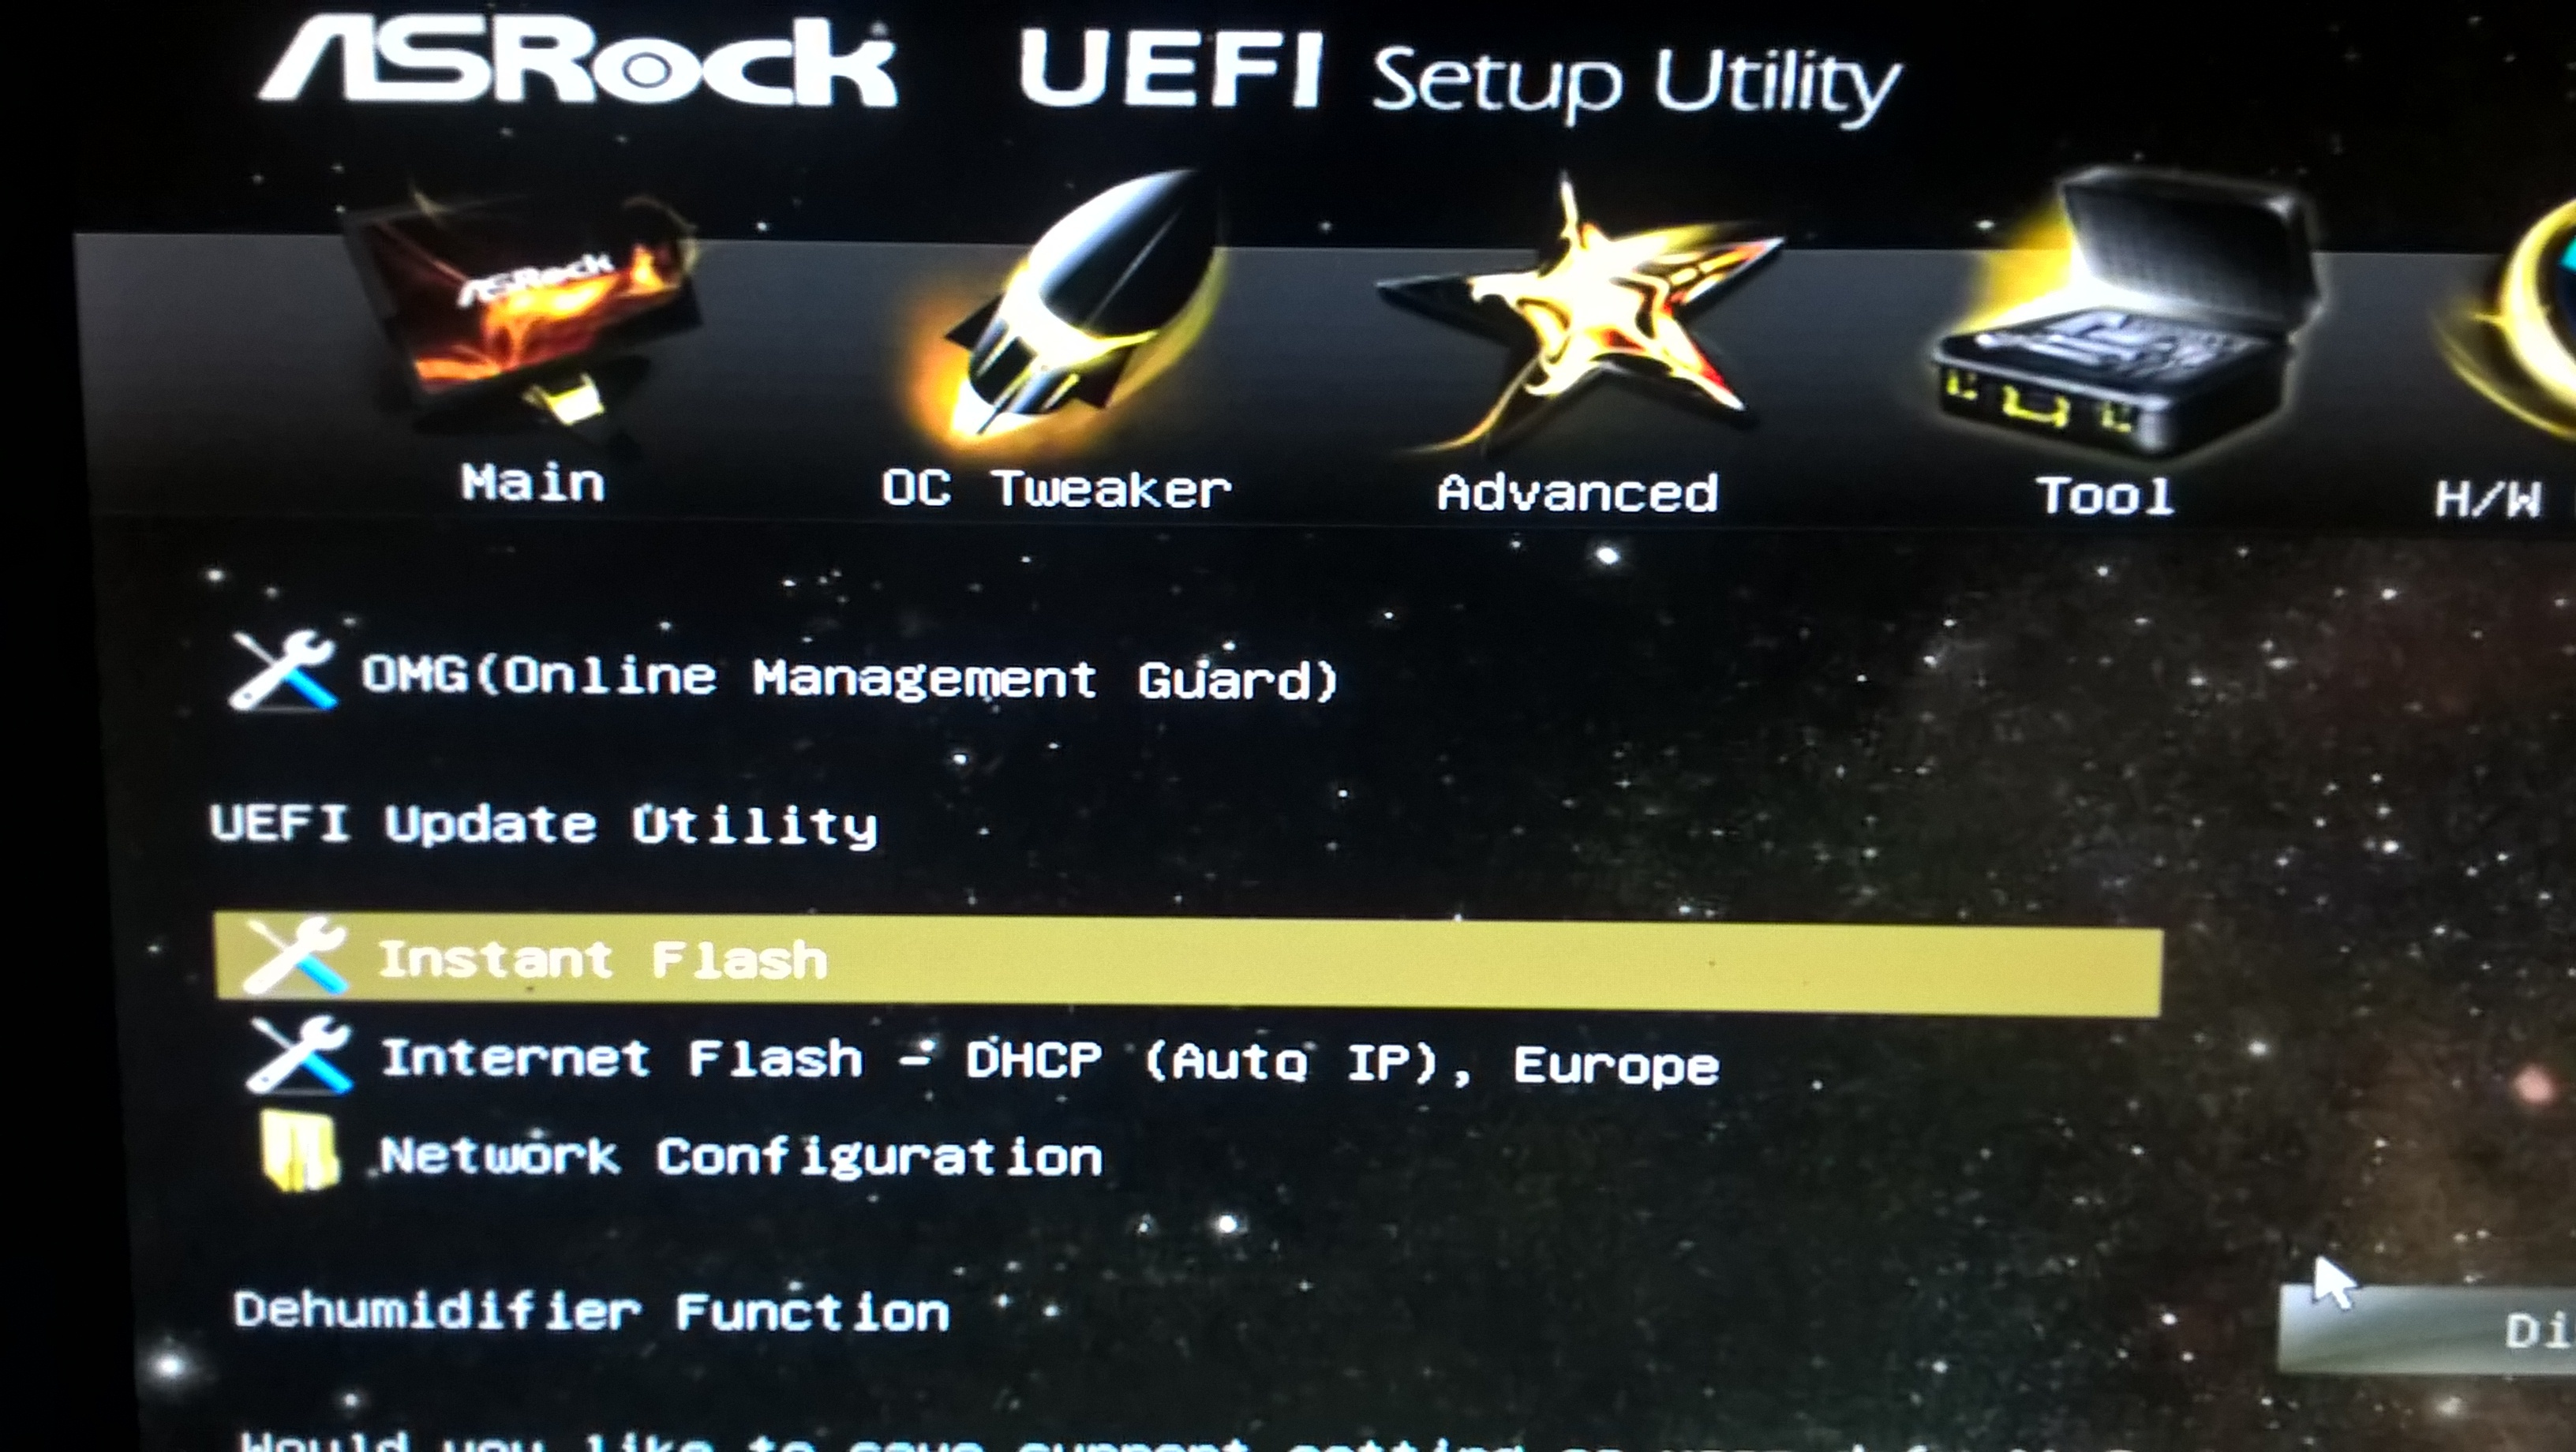 Tools uefi bios instal flash